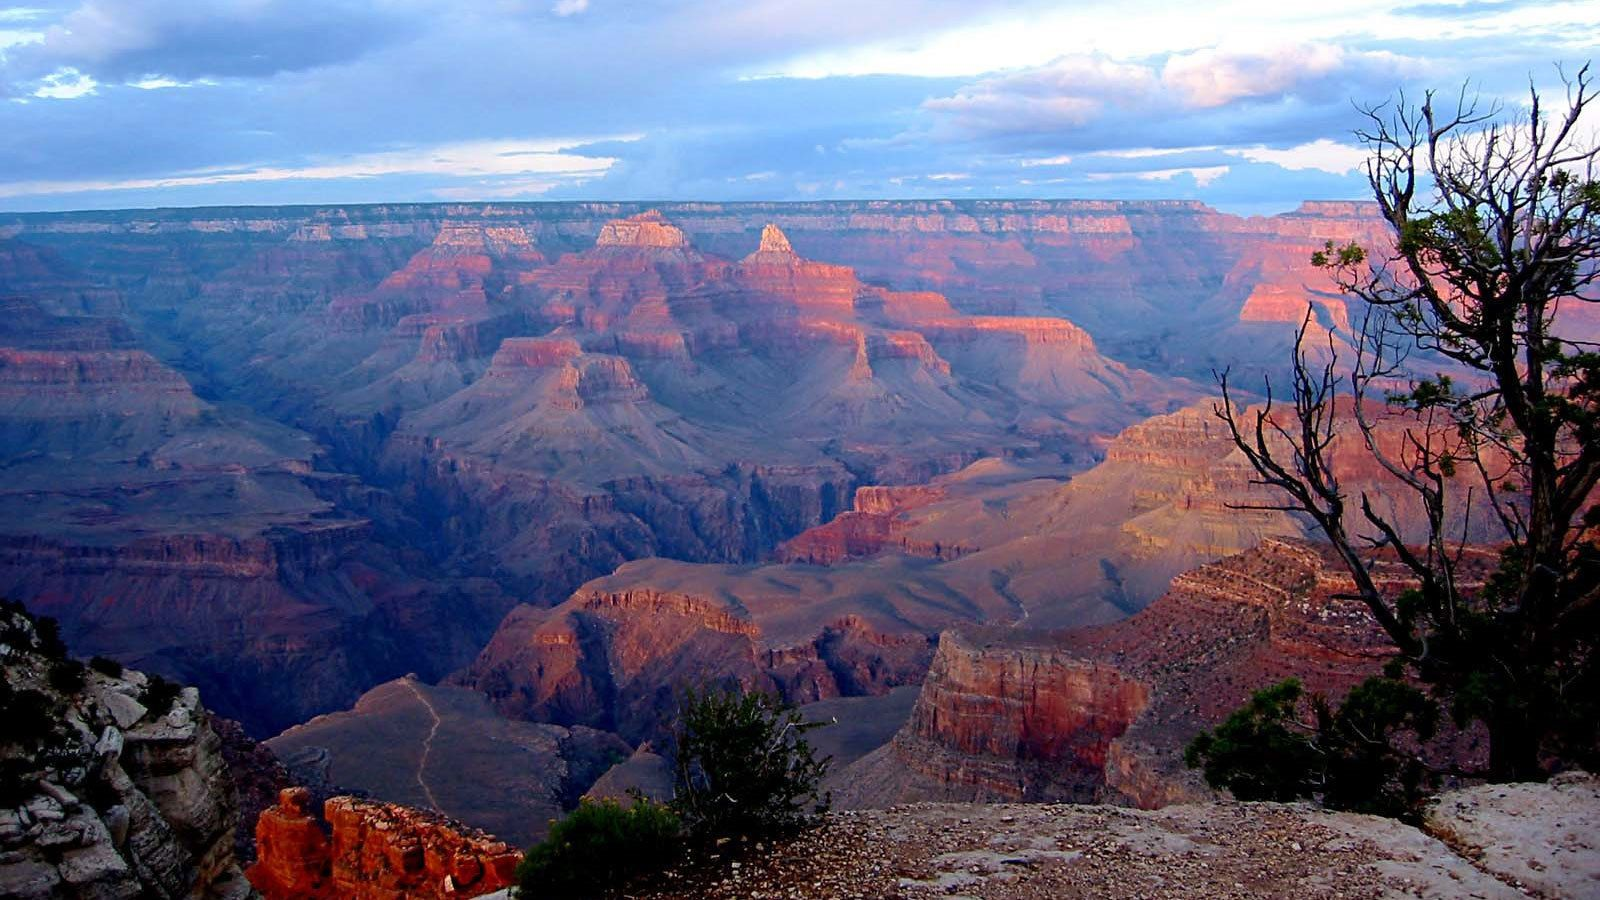 View from a trail of the Grand Canyon at sunset in Arizona